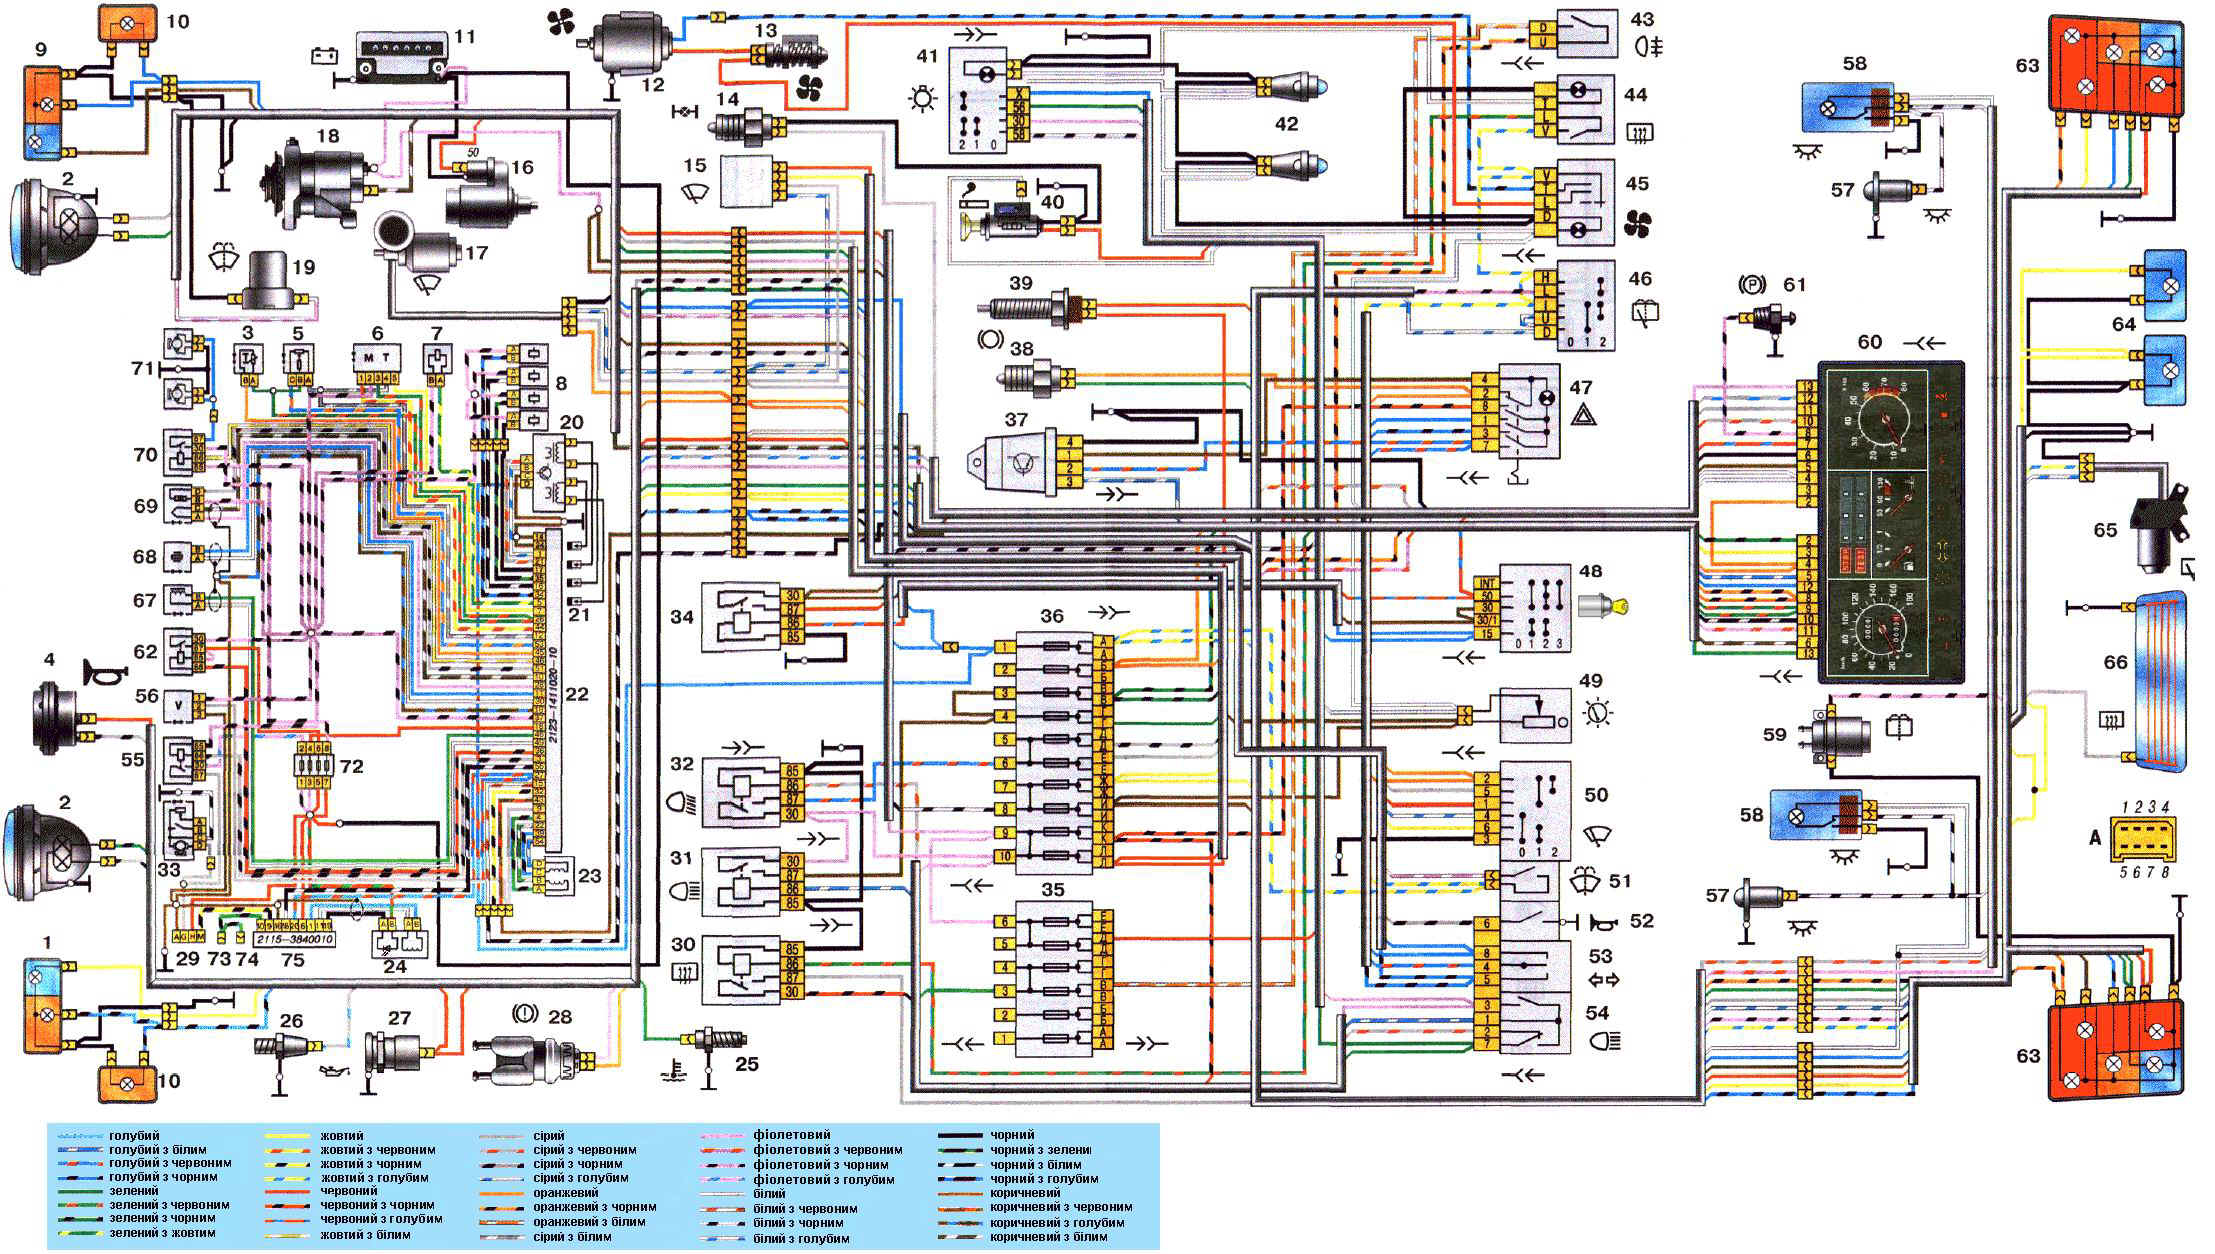 Wiring Diagram 2000 Trl Auto Electrical Vanguard Trailer 1967 Mercury Cougar